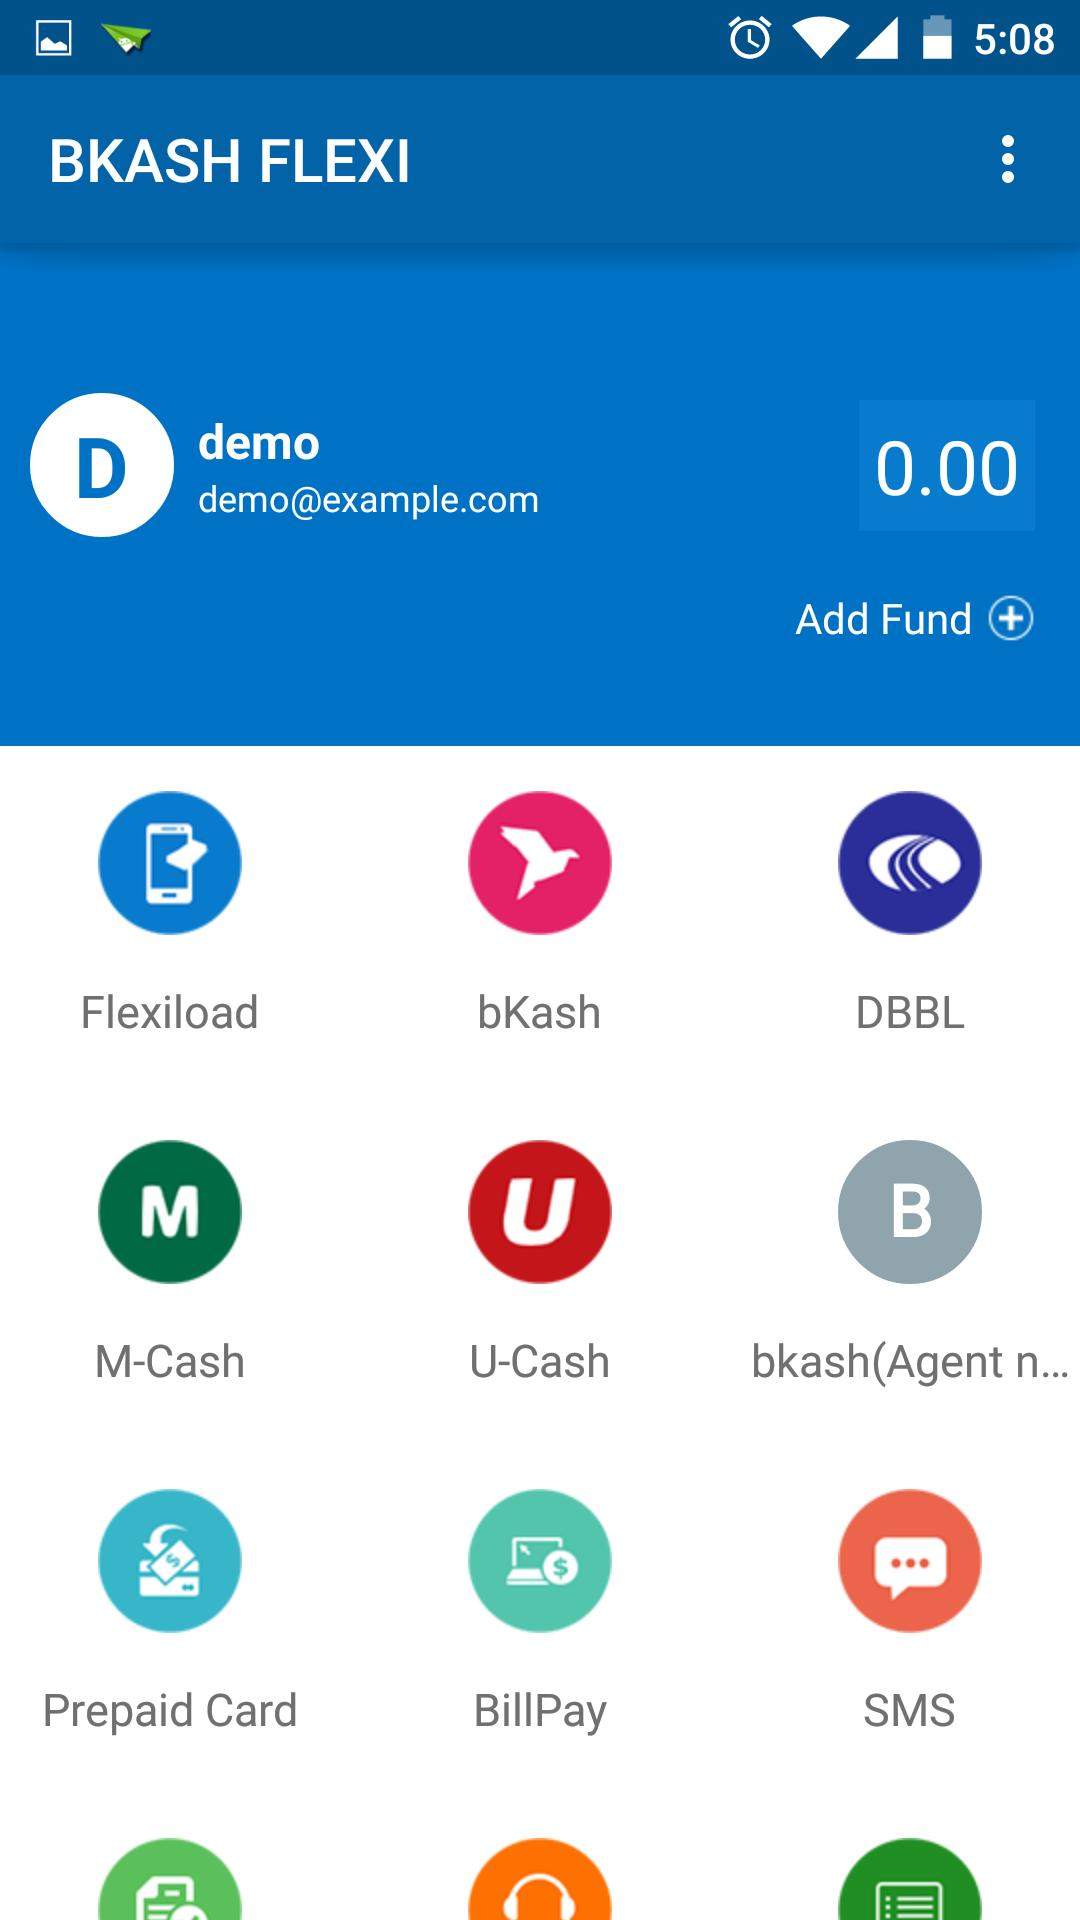 Bkash Flexi for Android - APK Download